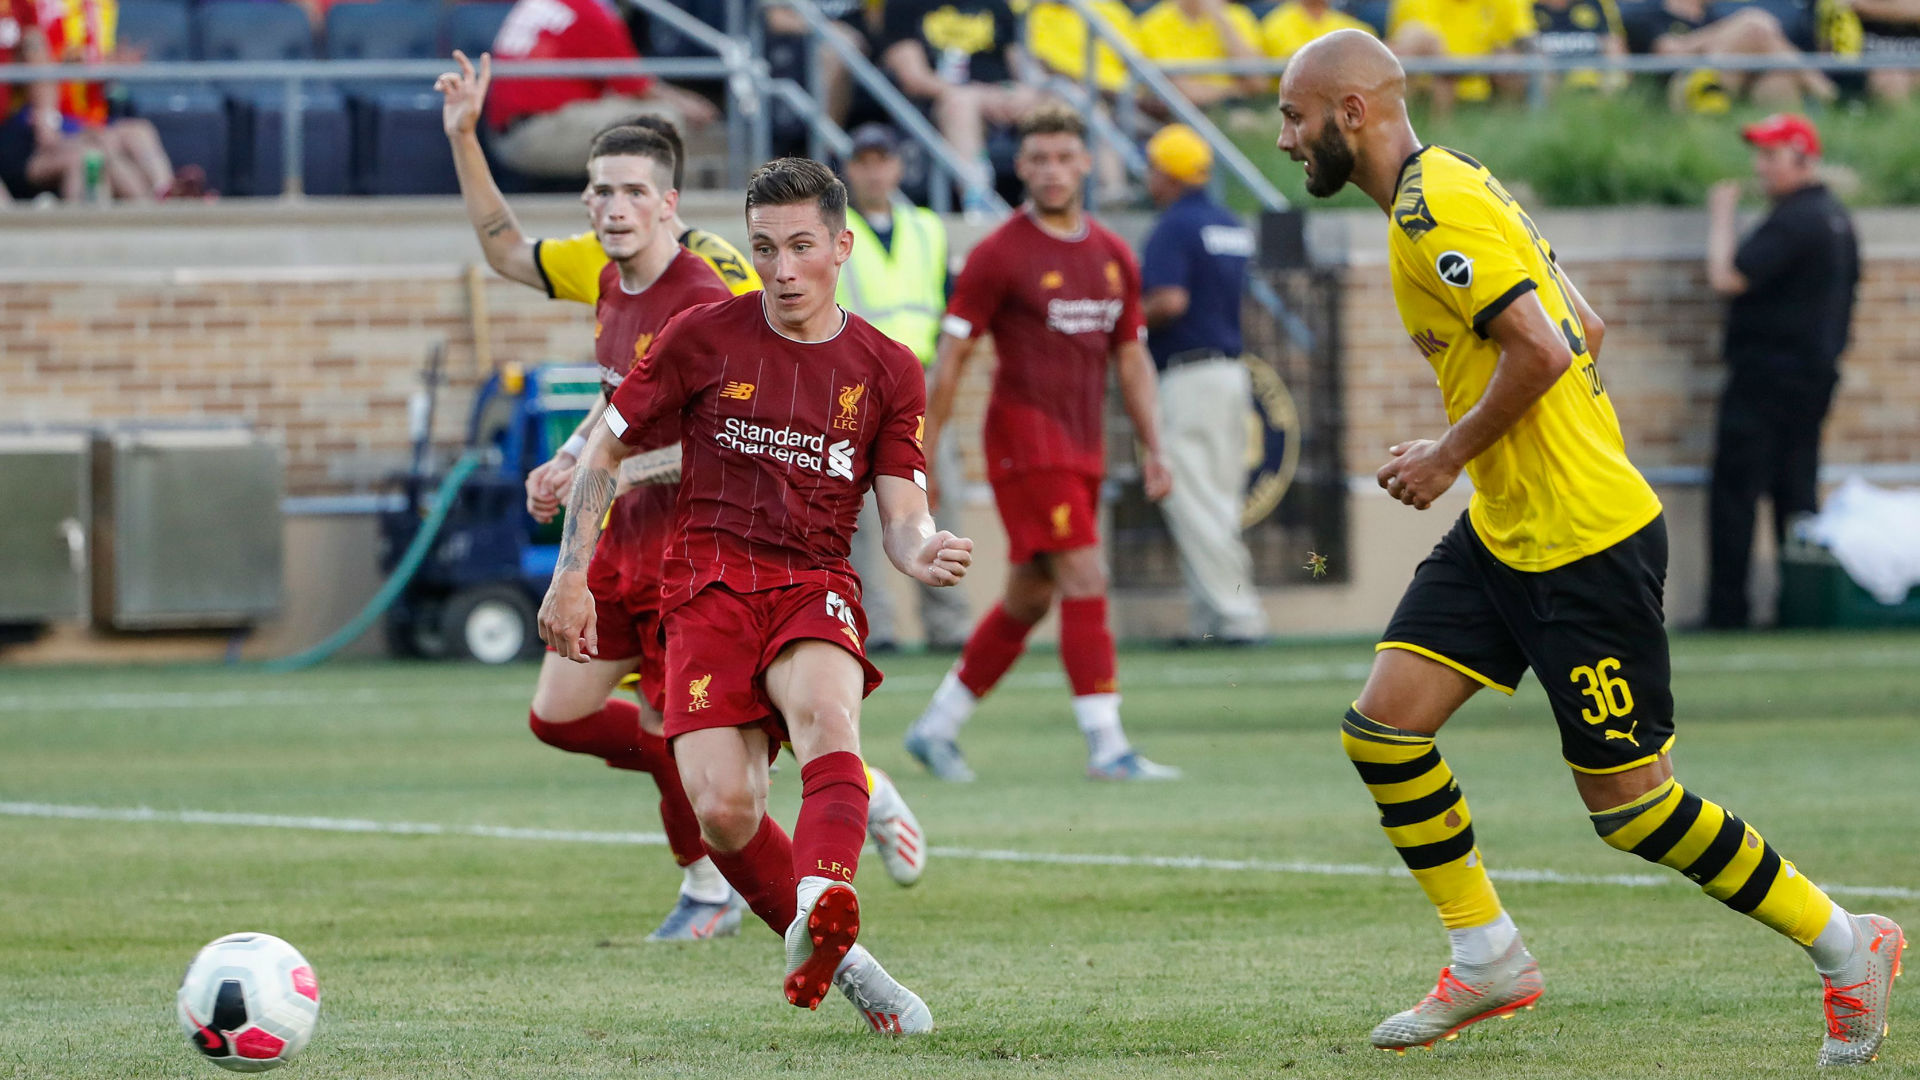 Borussia Dortmund tops Liverpool FC 3-2 in historic friendly